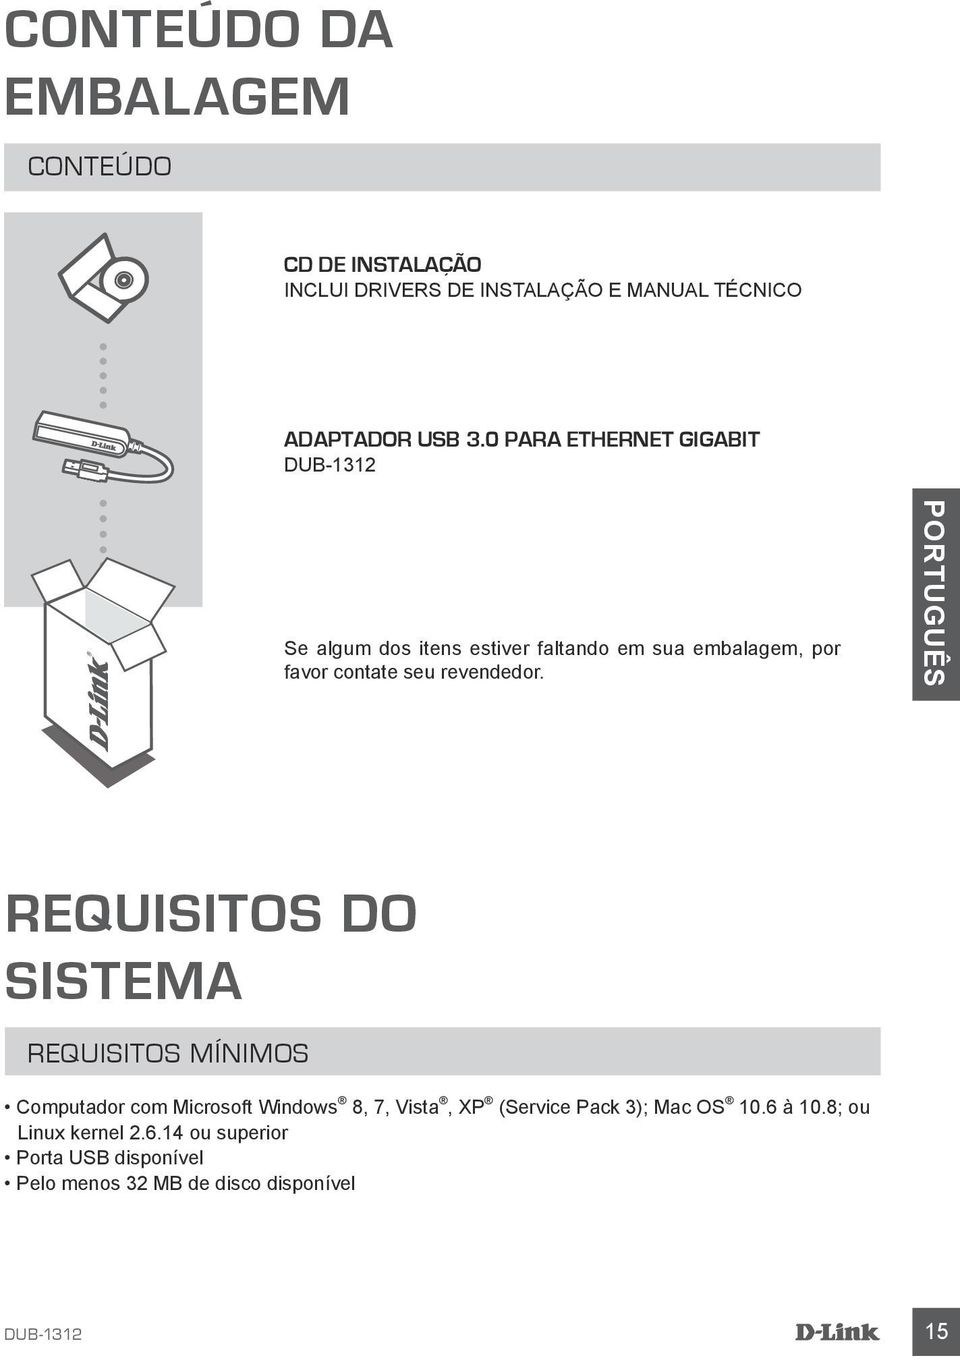 PORTUGUÊS REQUISITOS DO SISTEMA REQUISITOS MÍNIMOS Computador com Microsoft Windows 8, 7, Vista, XP (Service Pack